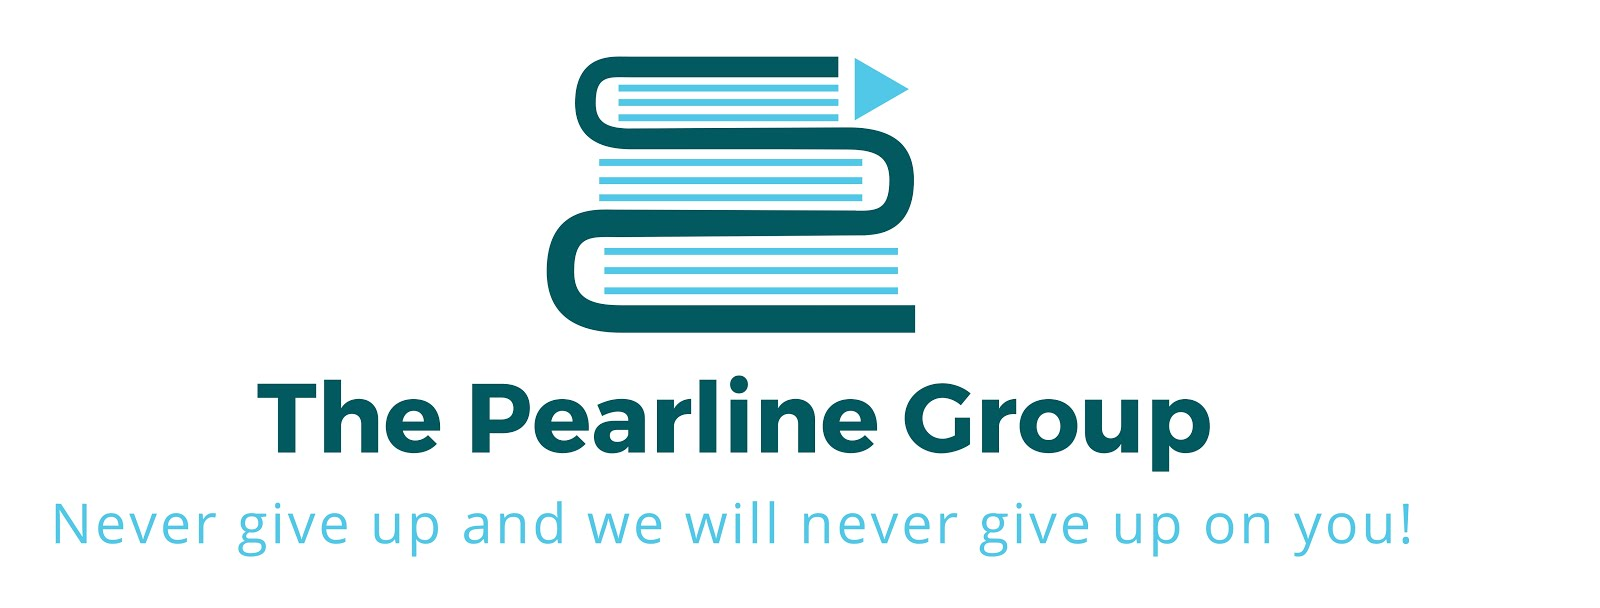 The Pearline Group